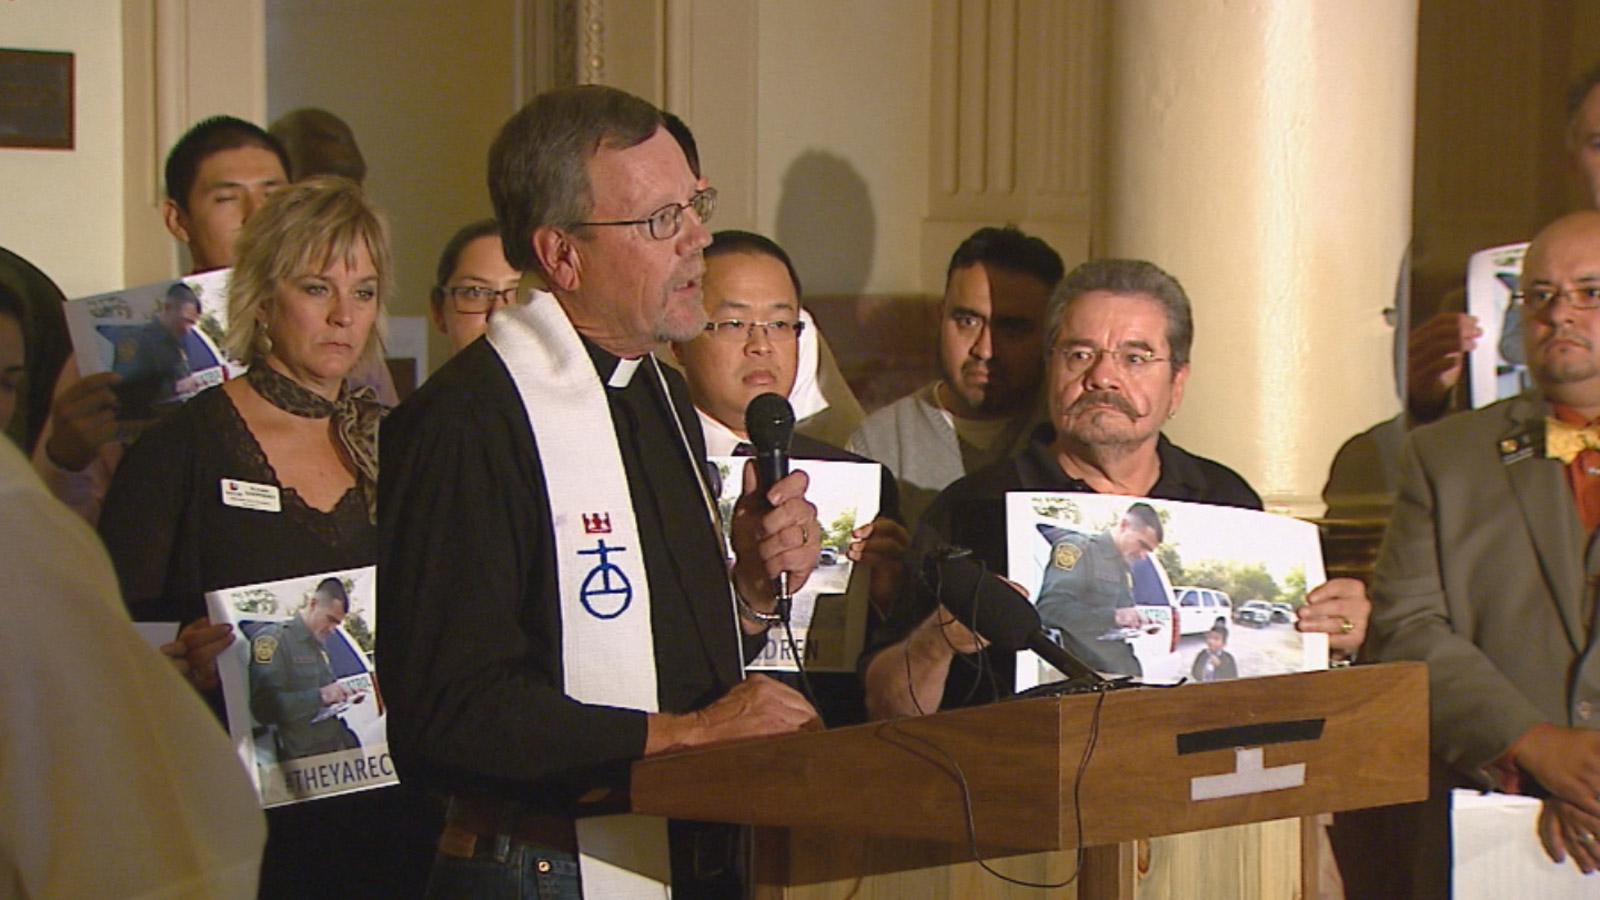 Groups gathered at the state Capitol to pressure Congress to take action with immigrant children (credit: CBS)